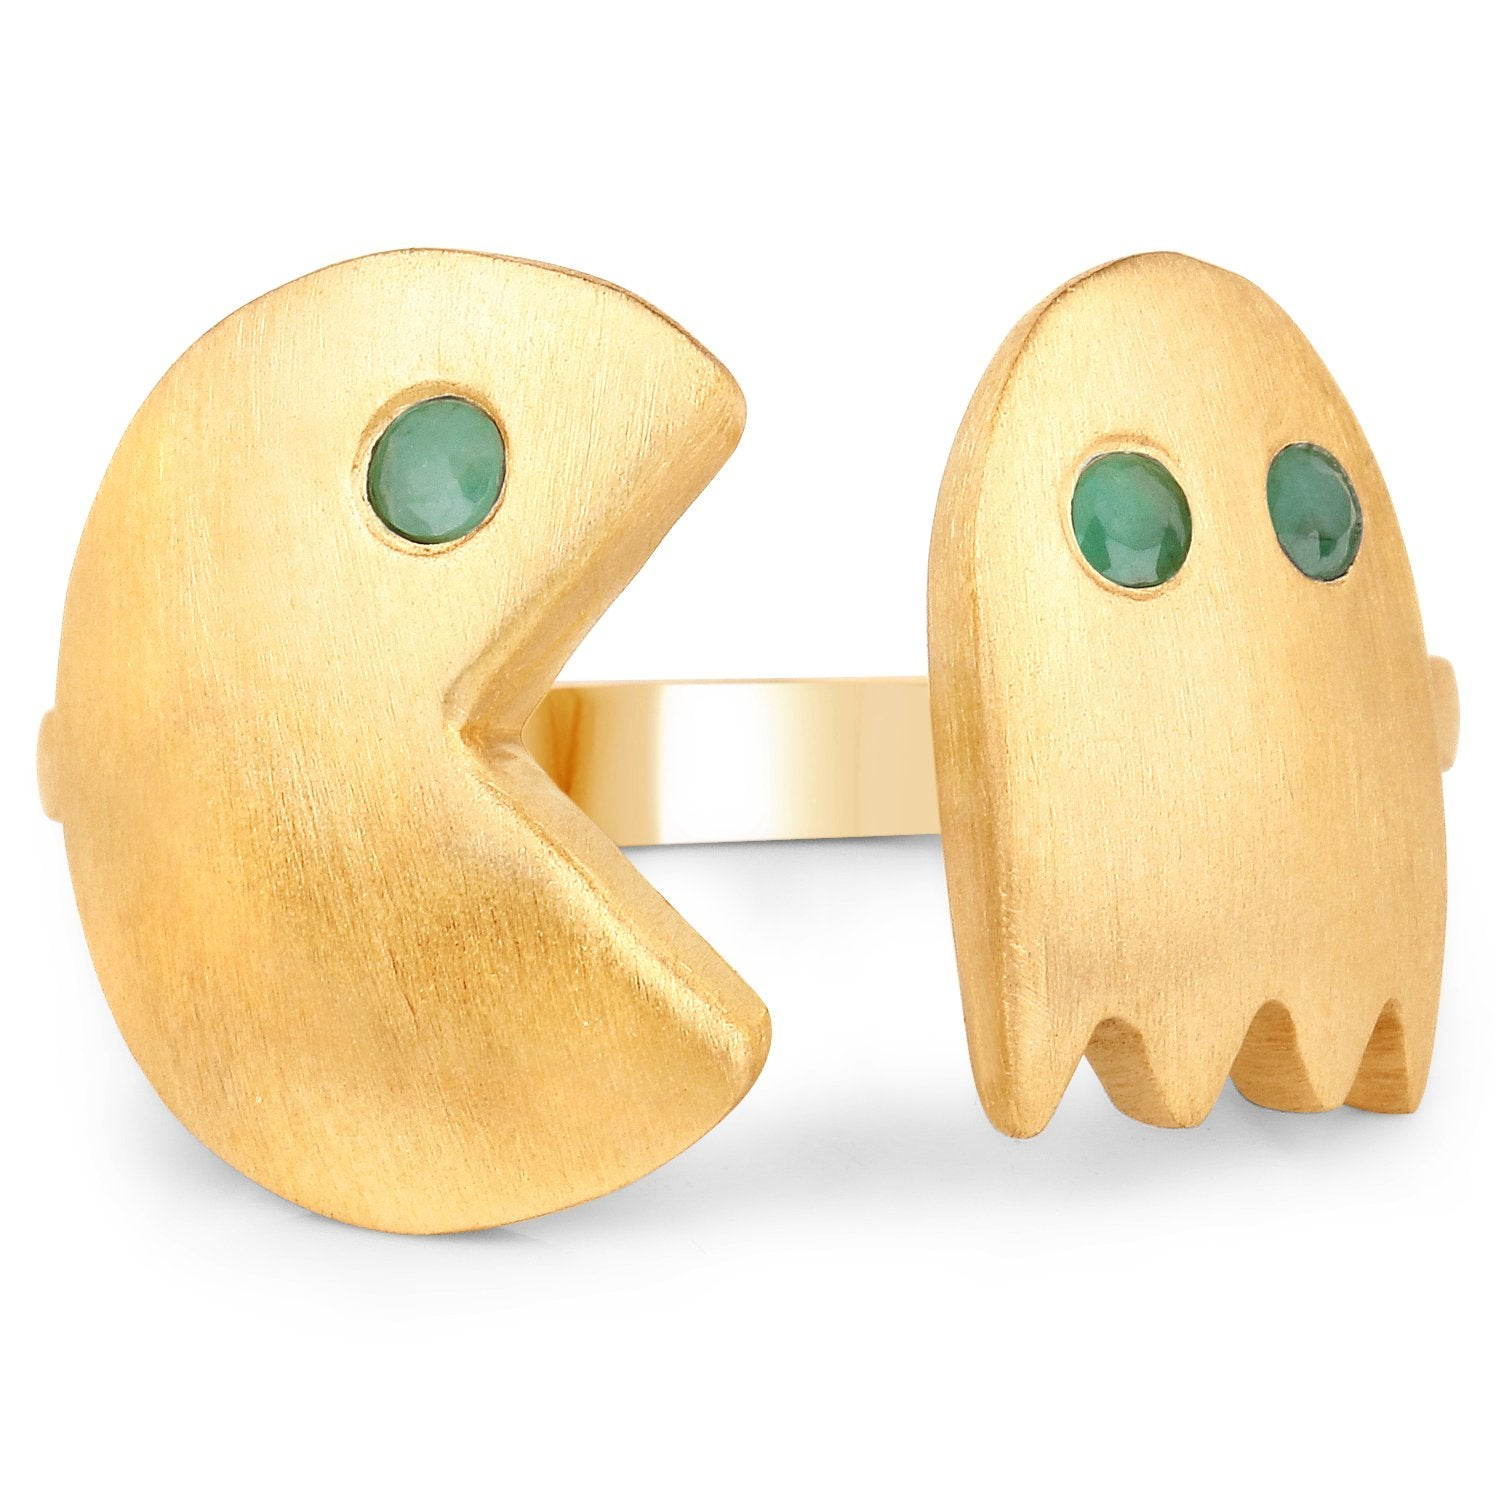 LoveHuang 0.09 Carats Genuine Emerald Pacman Ring Solid .925 Sterling Silver With 18KT Yellow Gold Plating, Matte Finish